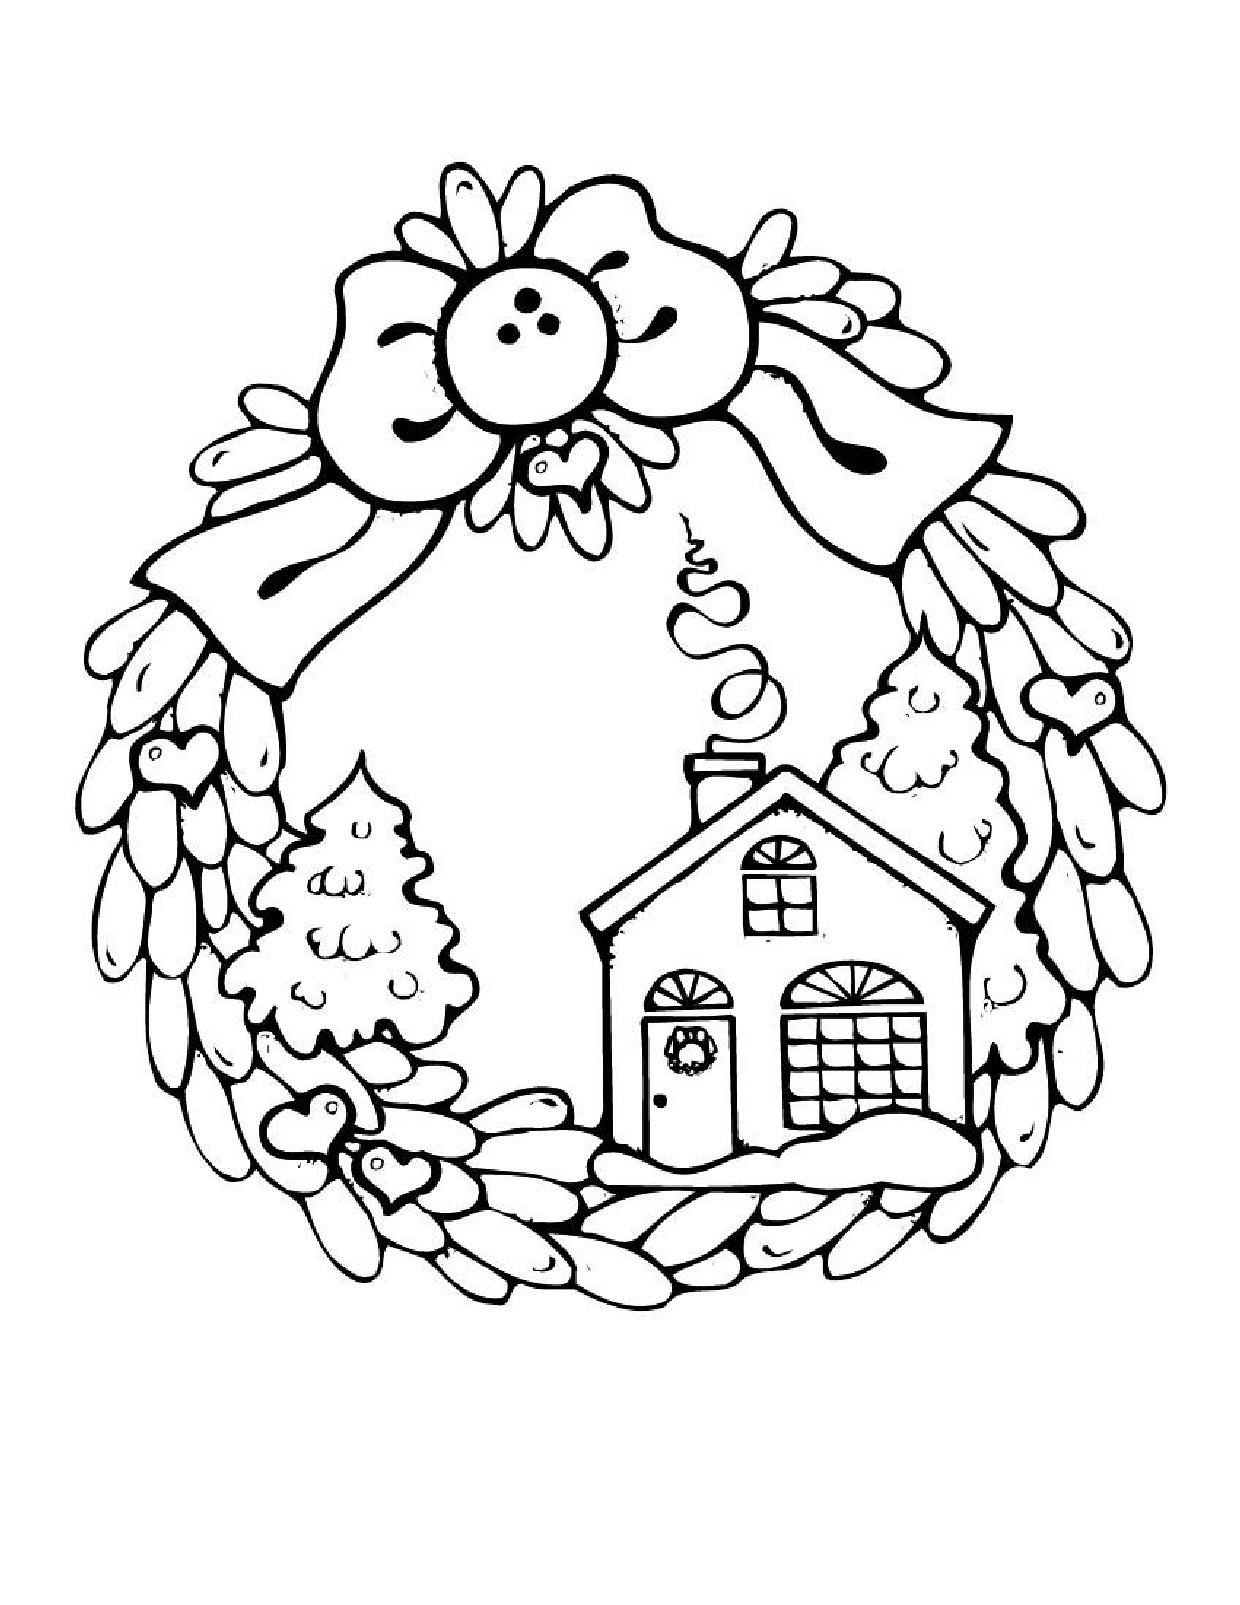 New Year & January Coloring Pages: Printable Fun to Help Kids ... | 1605x1240